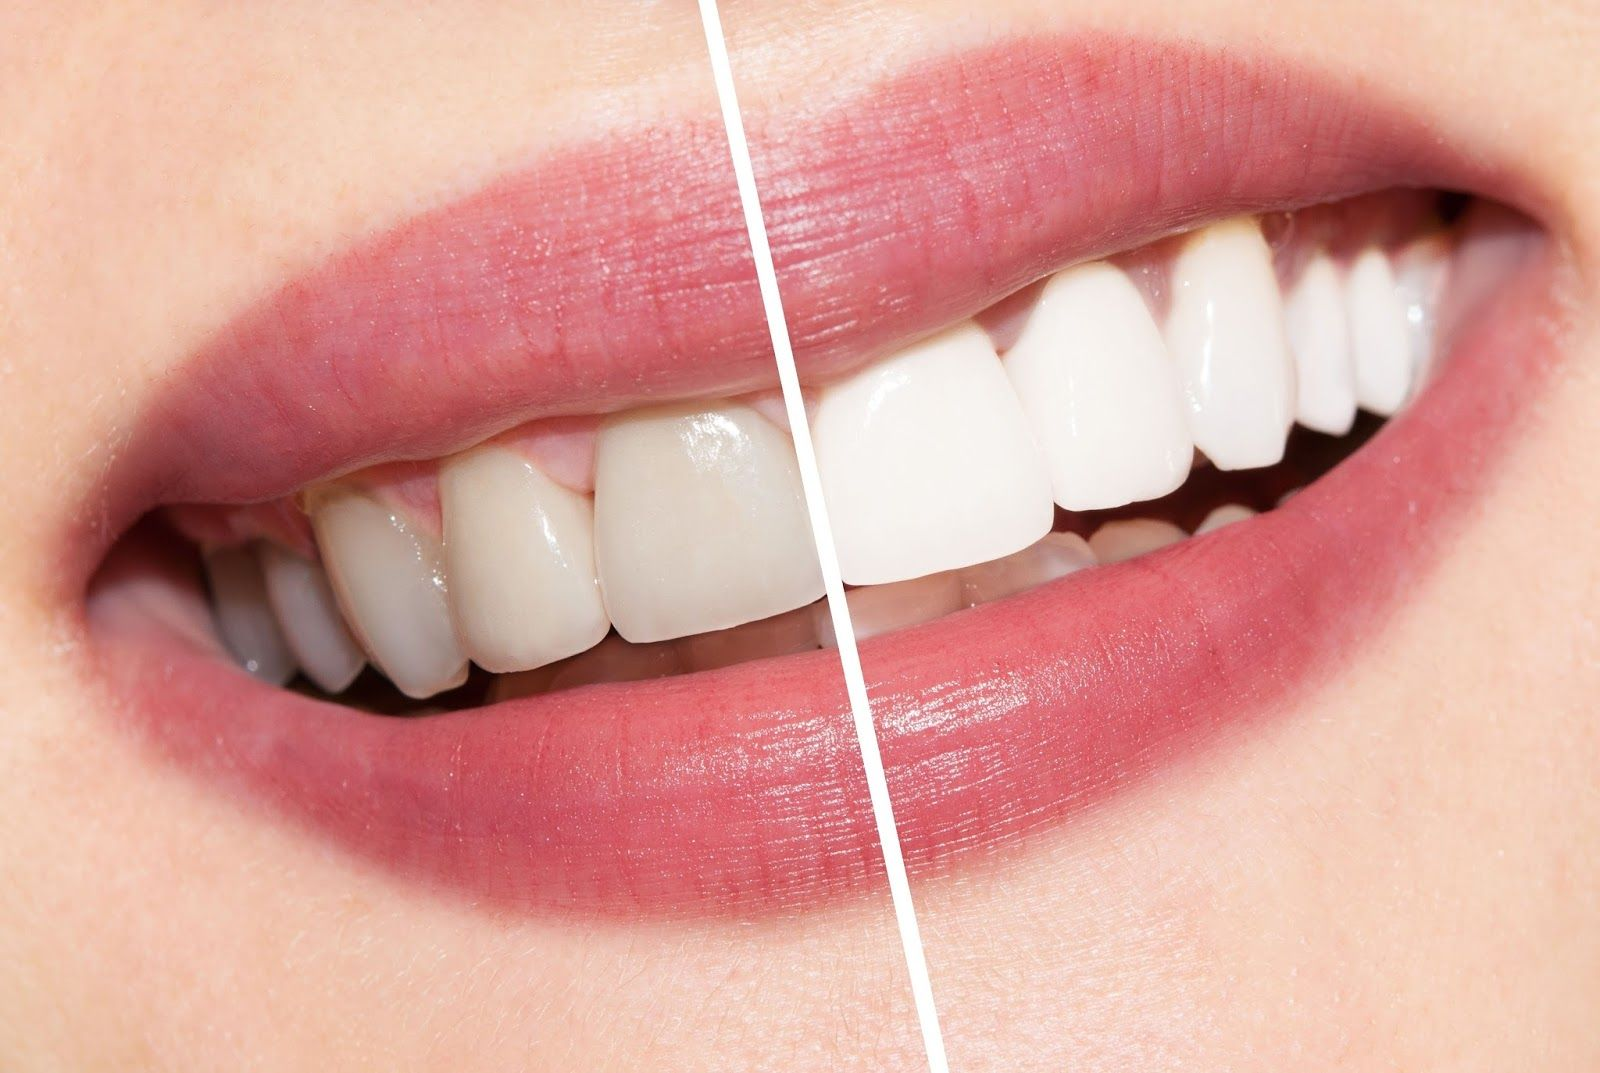 Protecting the Teeth With Dental Crowns - What Types Are Available?